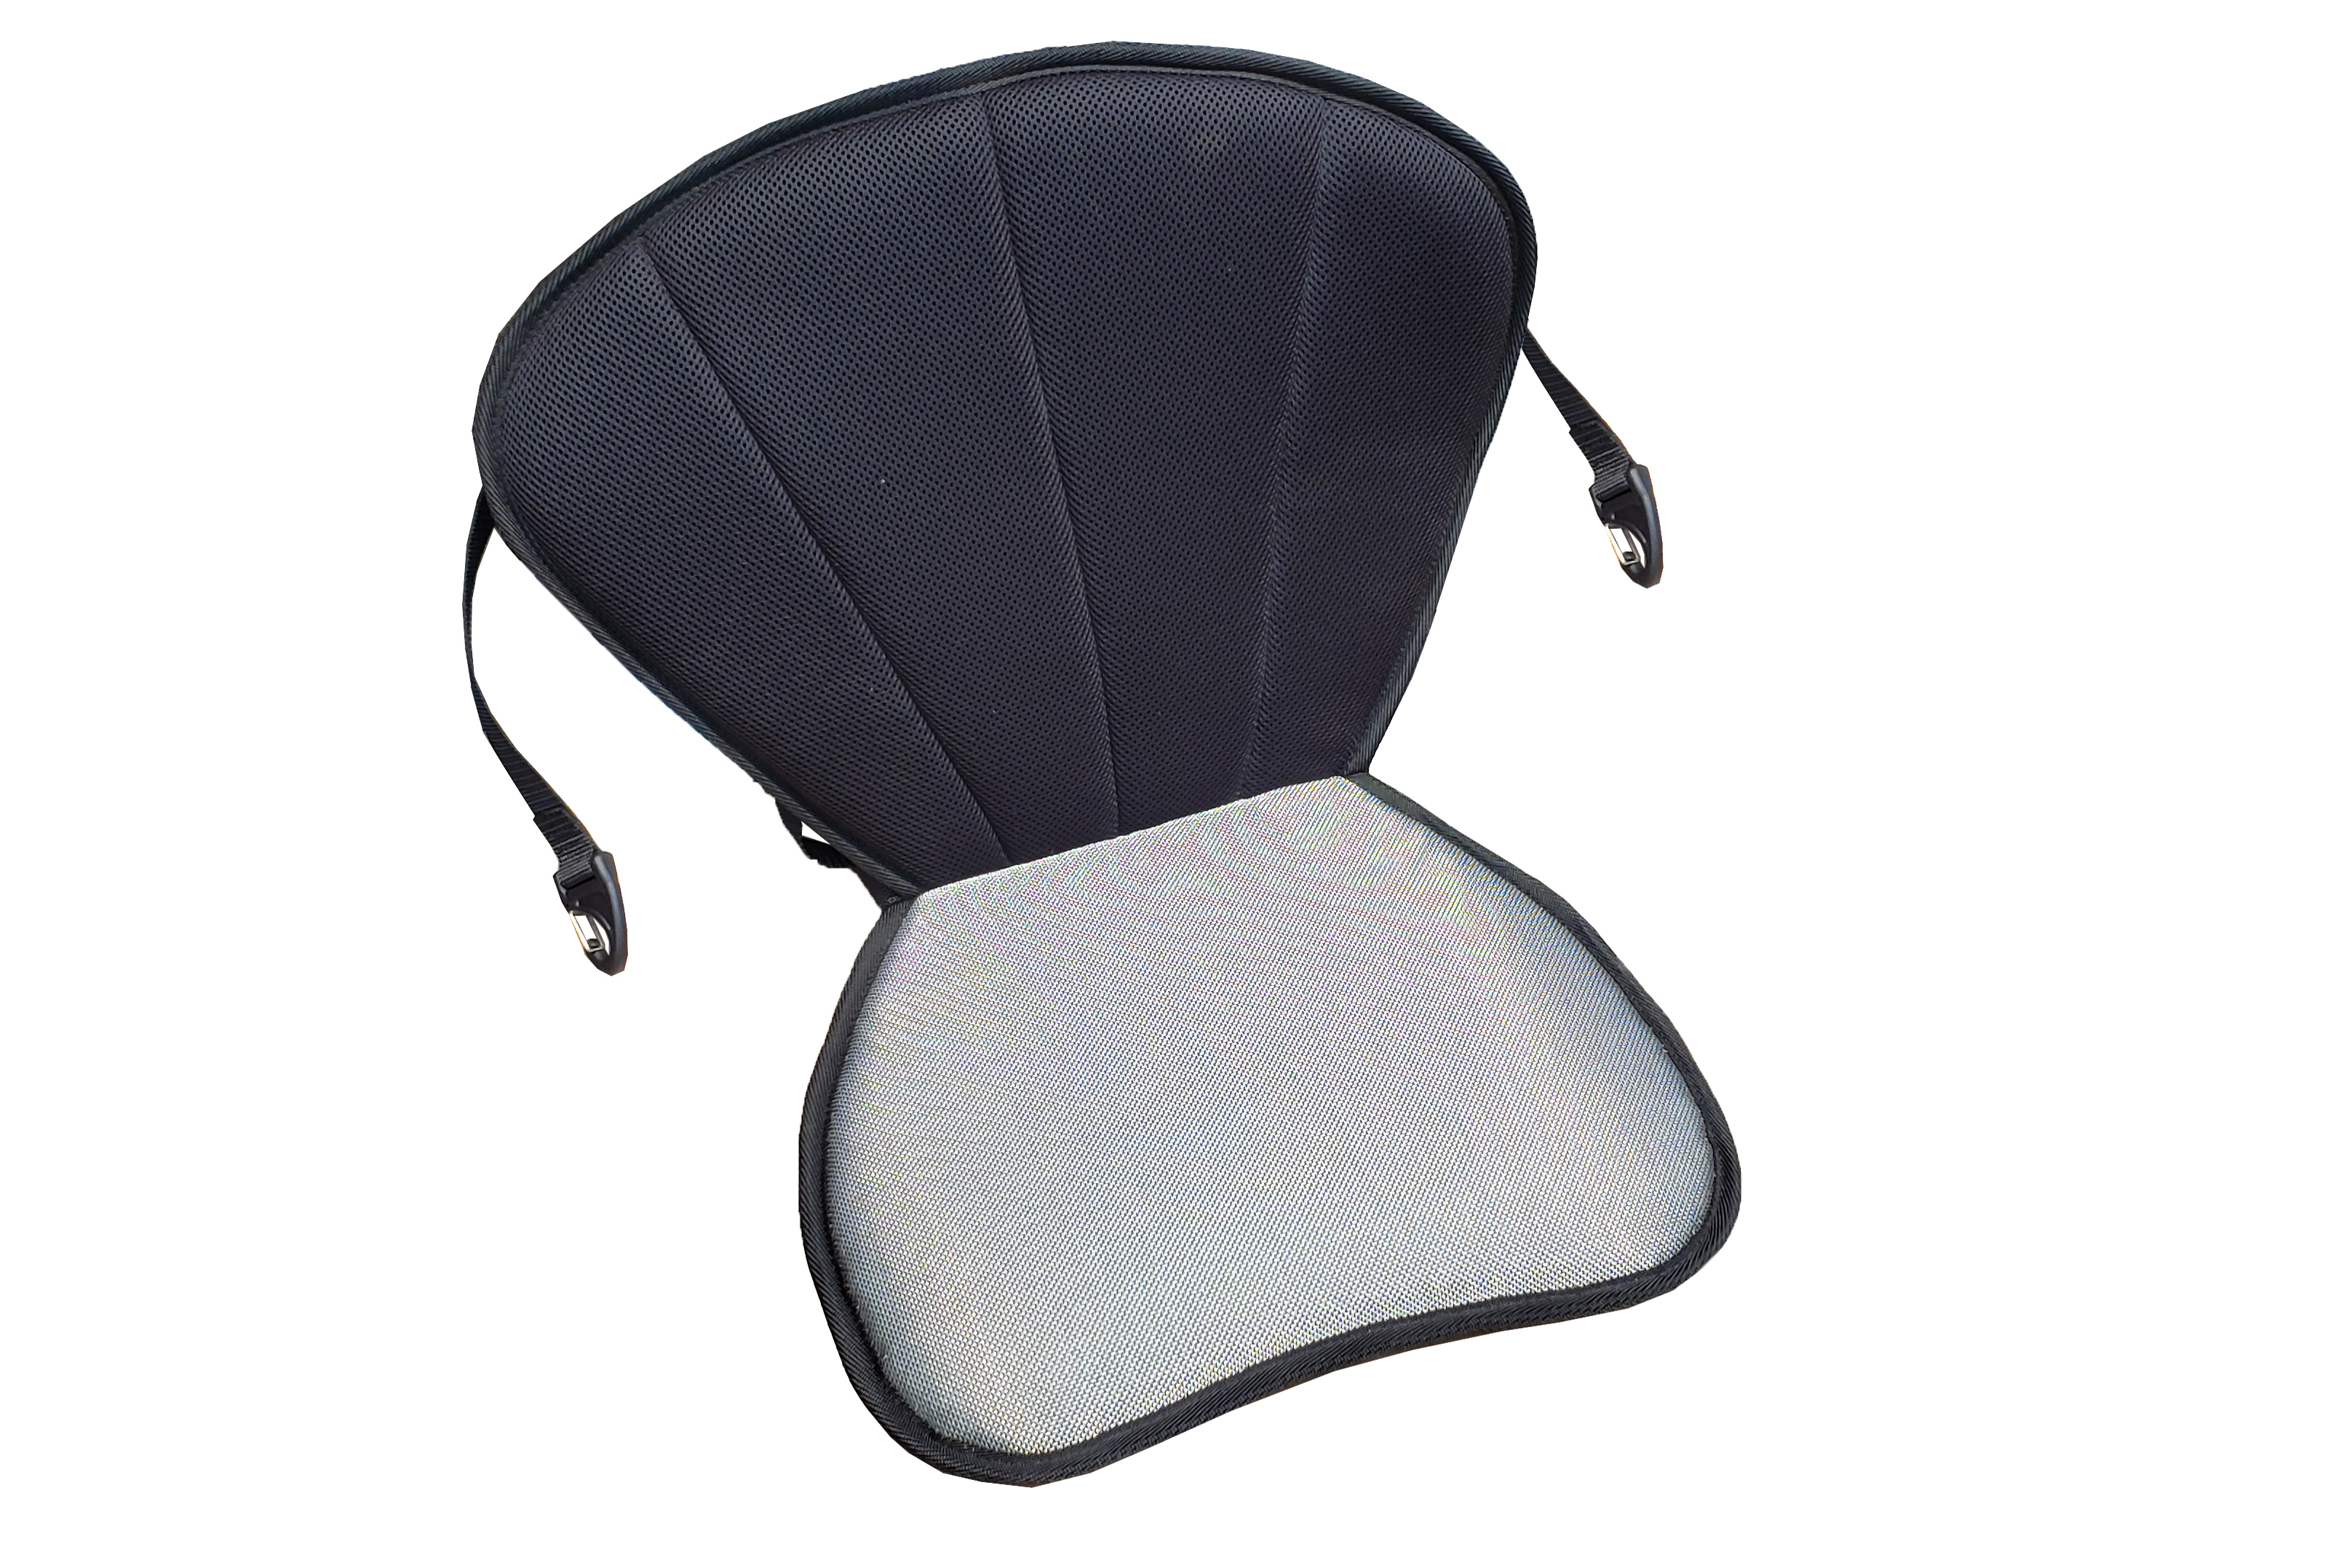 ClamShell Seat Pad